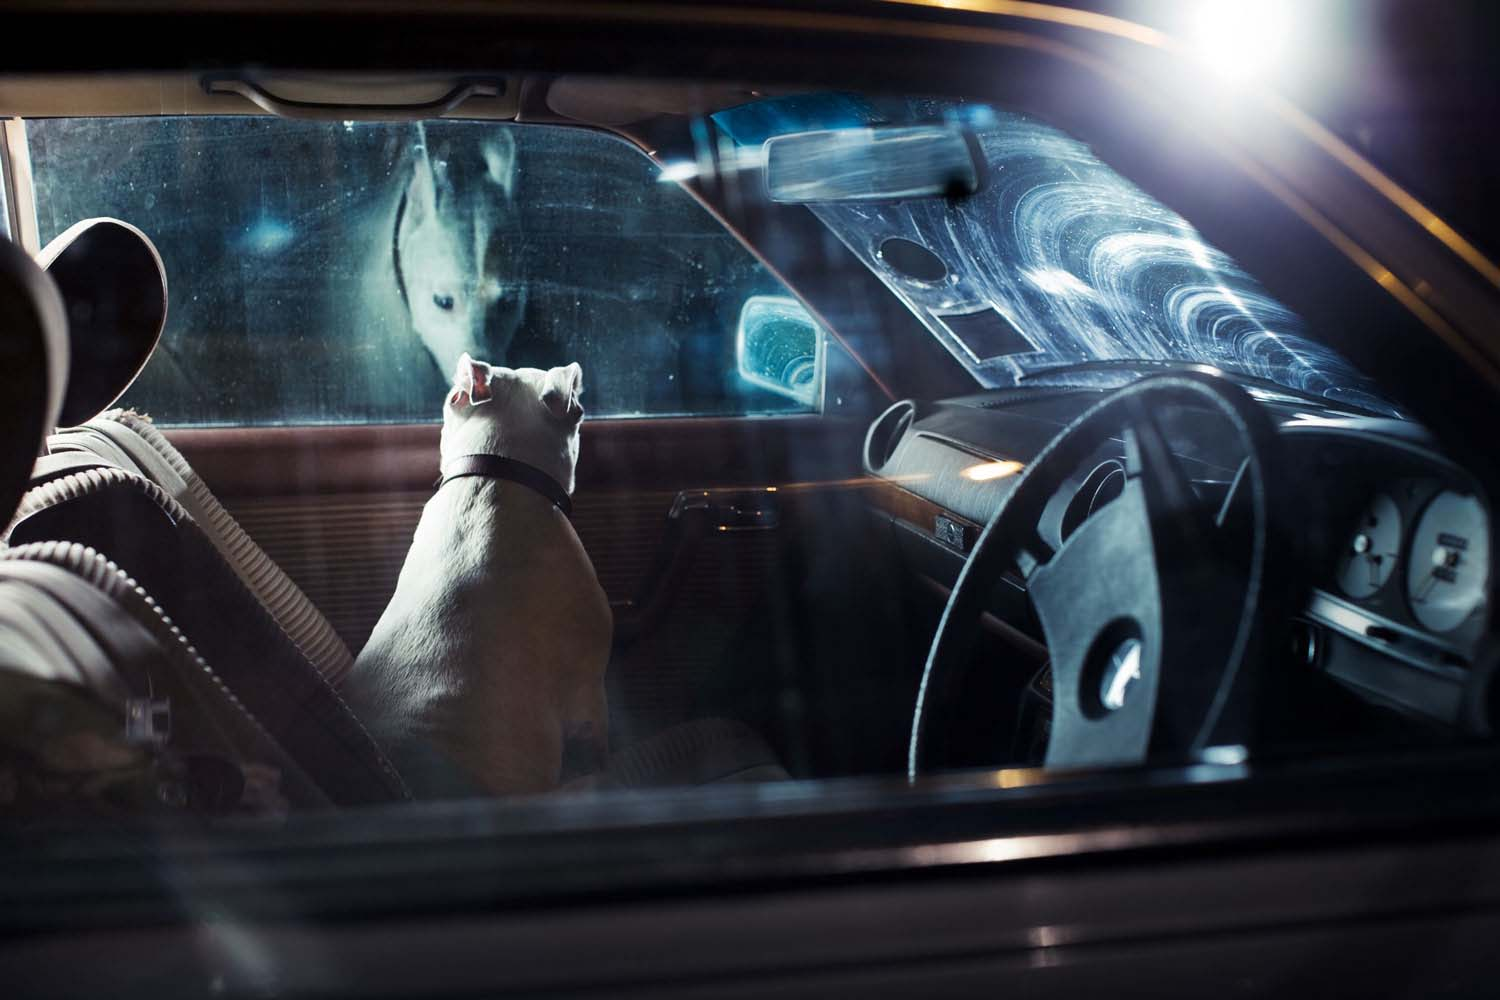 Martin Usborne, The Silence of Dogs in Cars Published by Hoxton Mini Press